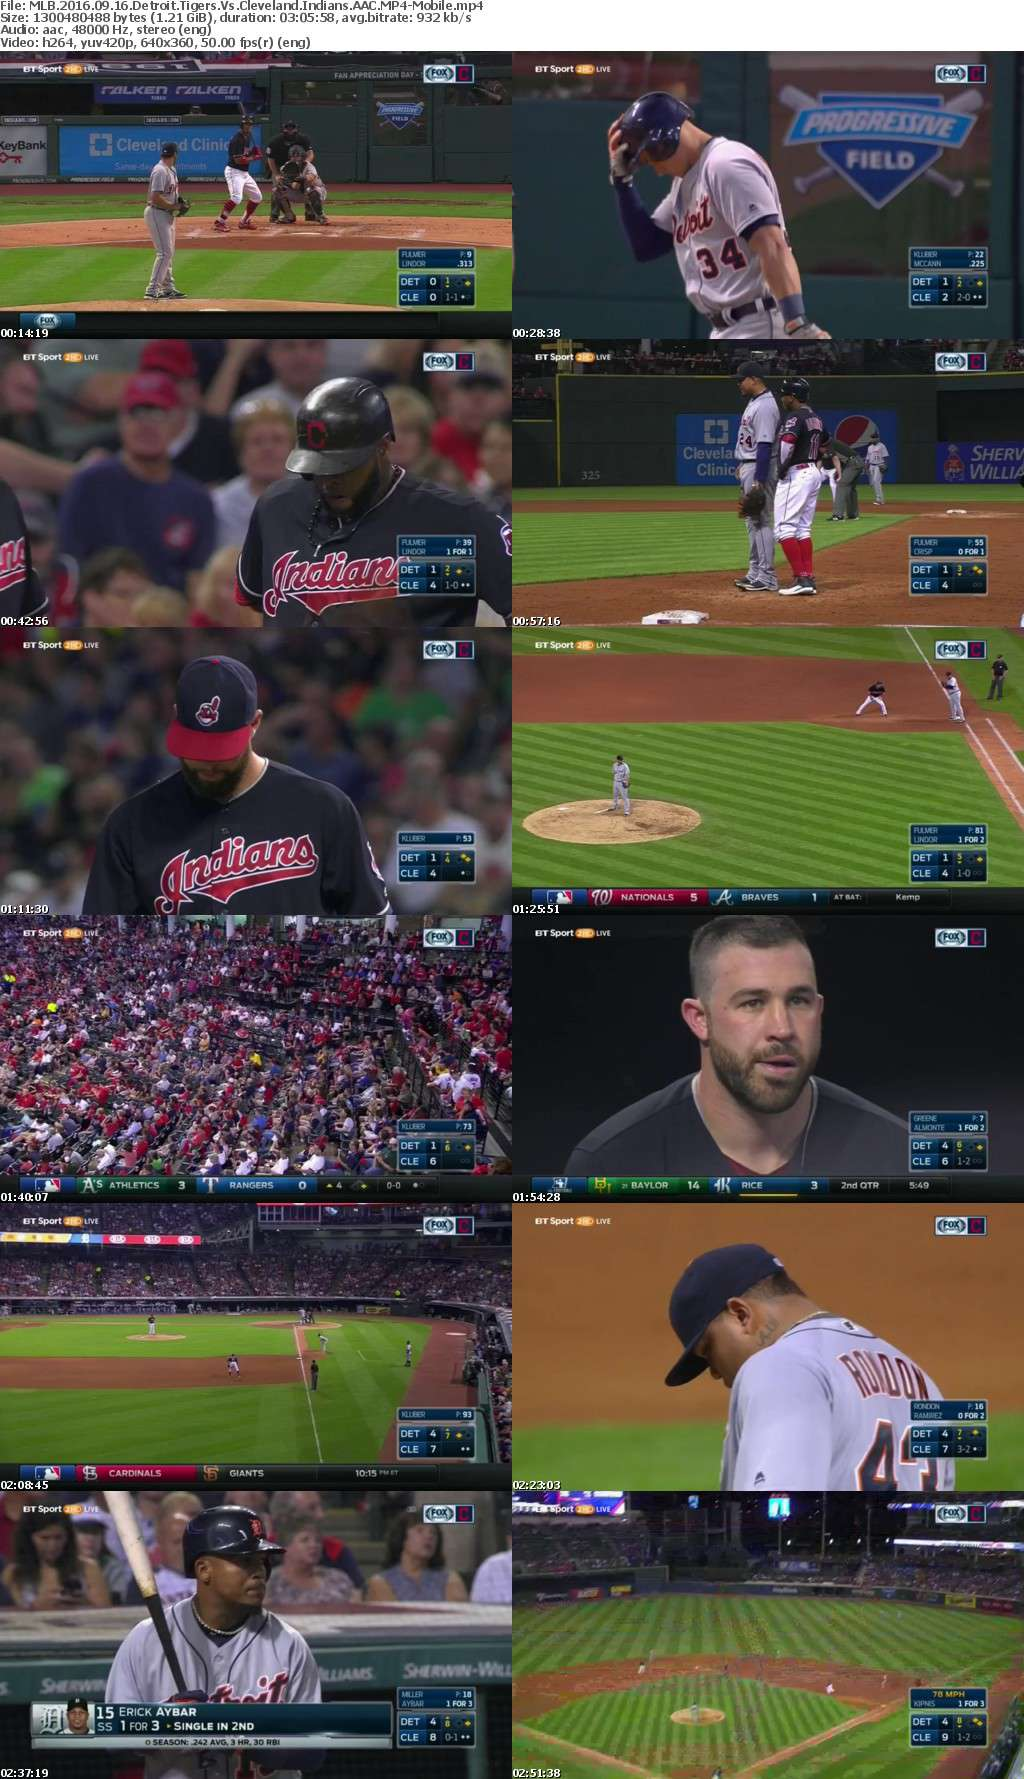 MLB 2016 09 16 Detroit Tigers Vs Cleveland Indians AAC-Mobile